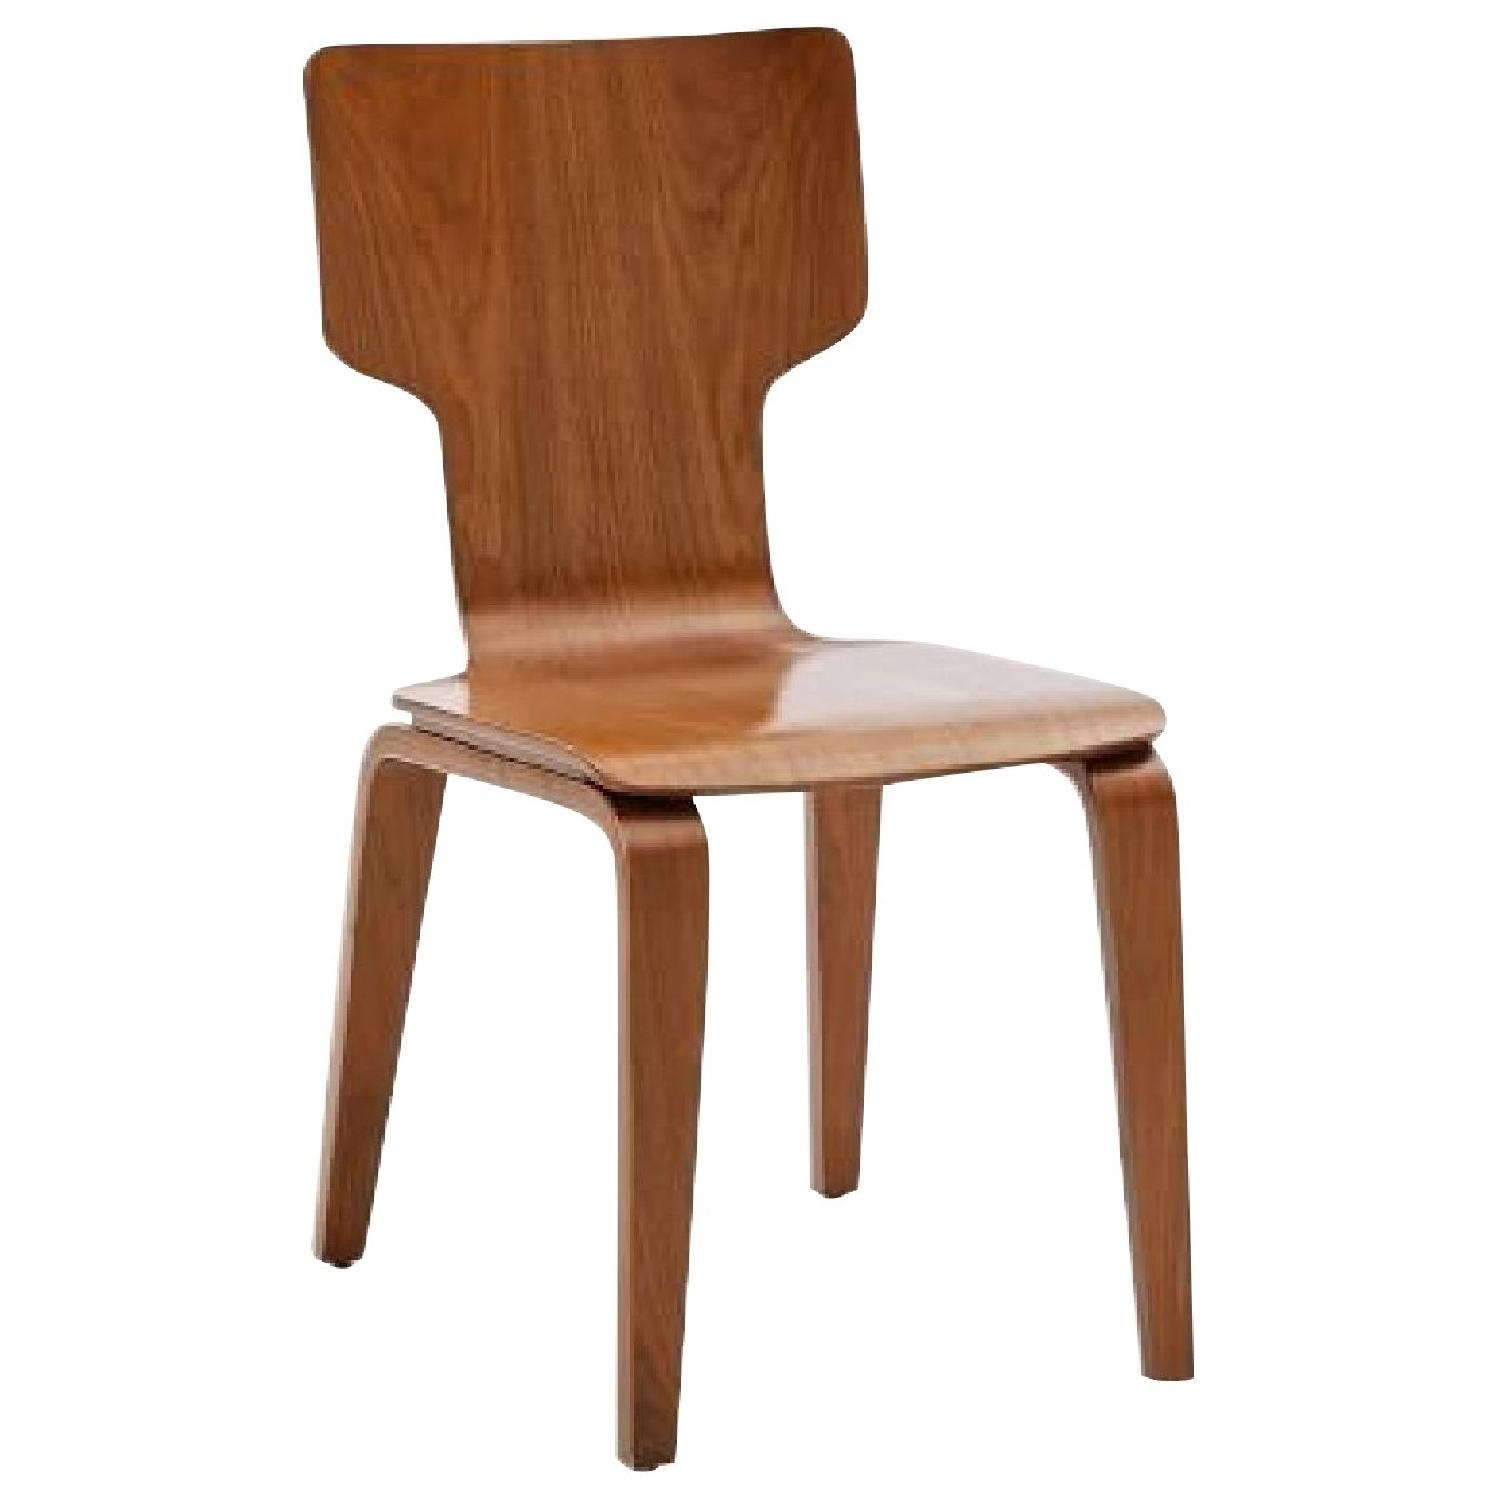 West Elm Stackable Dining Chair in Walnut - image-0